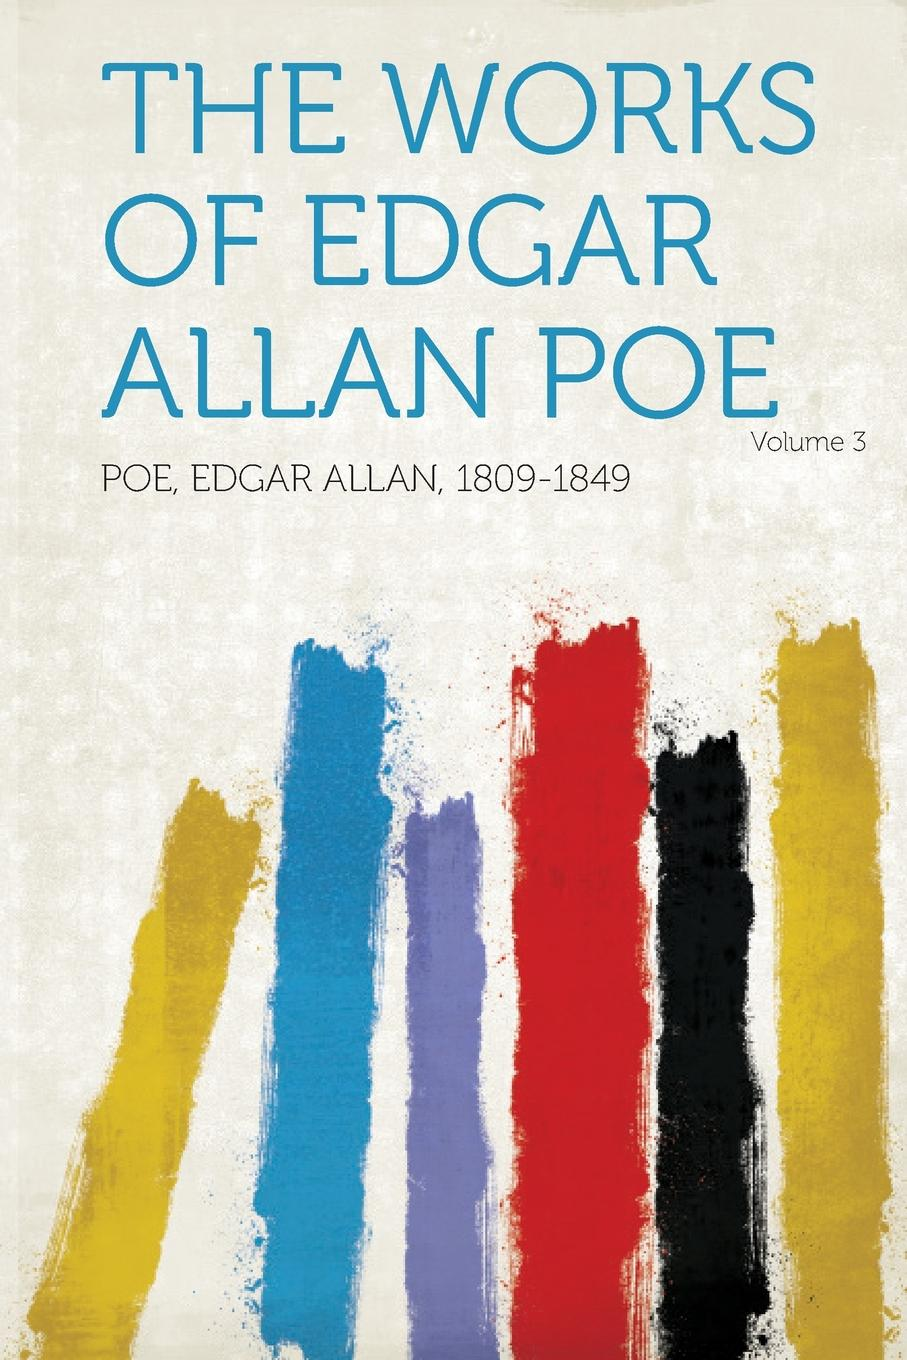 Poe Edgar Allan 1809-1849 The Works of Edgar Allan Poe Volume 3 charles richard tuttle a new centennial history of the state of kansas microform